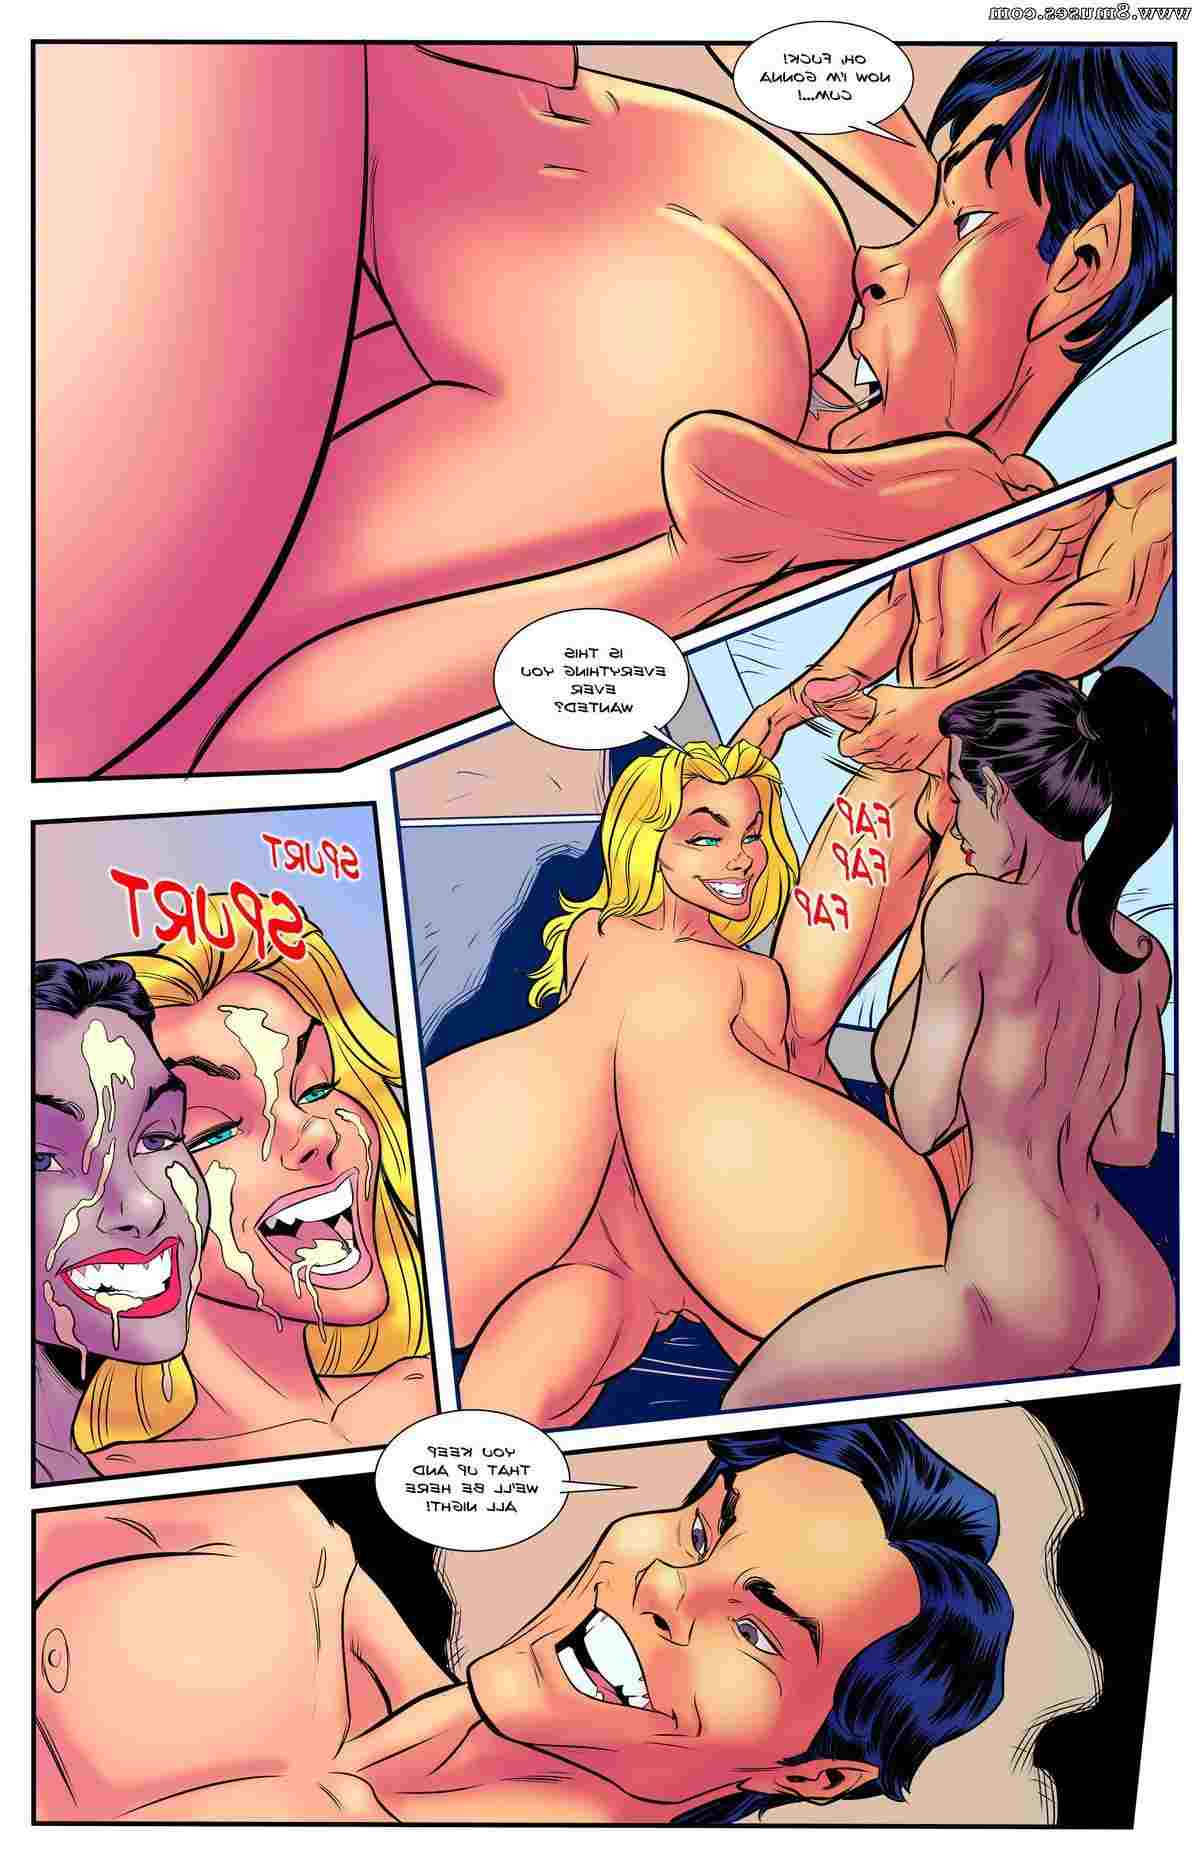 BE-Story-Club-Comics/Massive Massive__8muses_-_Sex_and_Porn_Comics_38.jpg